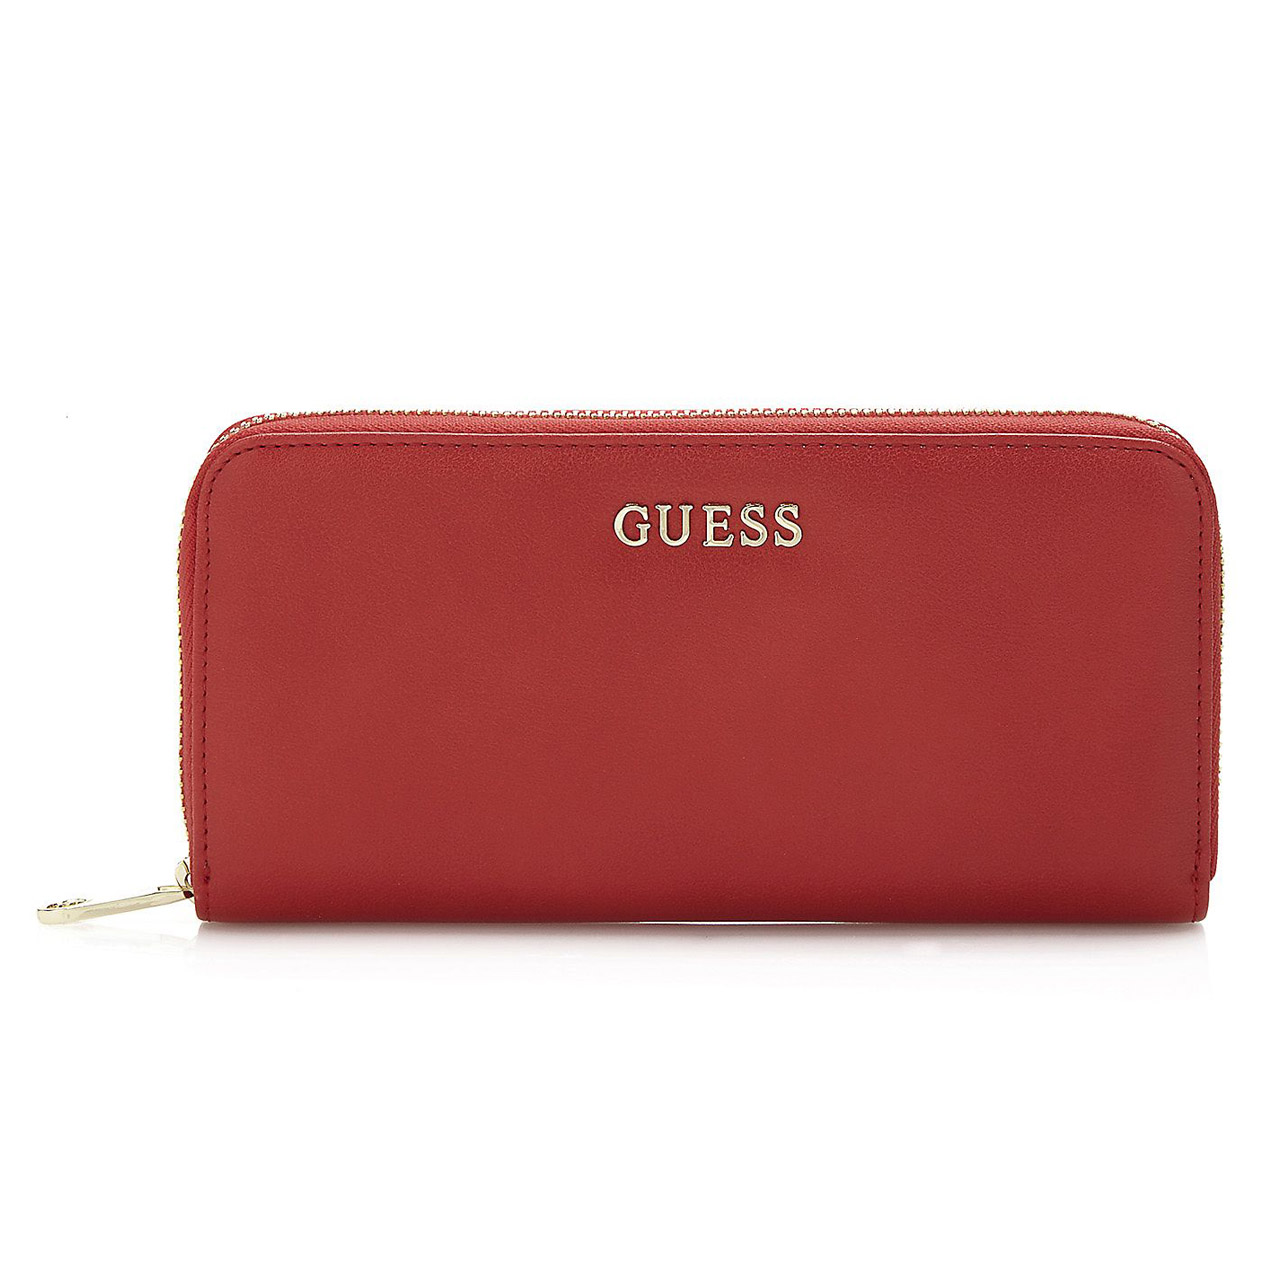 a135355cfd8 Guess tassen SWISAP-P7246-RED-0 Rood - Portemonnees - Accessoires ...